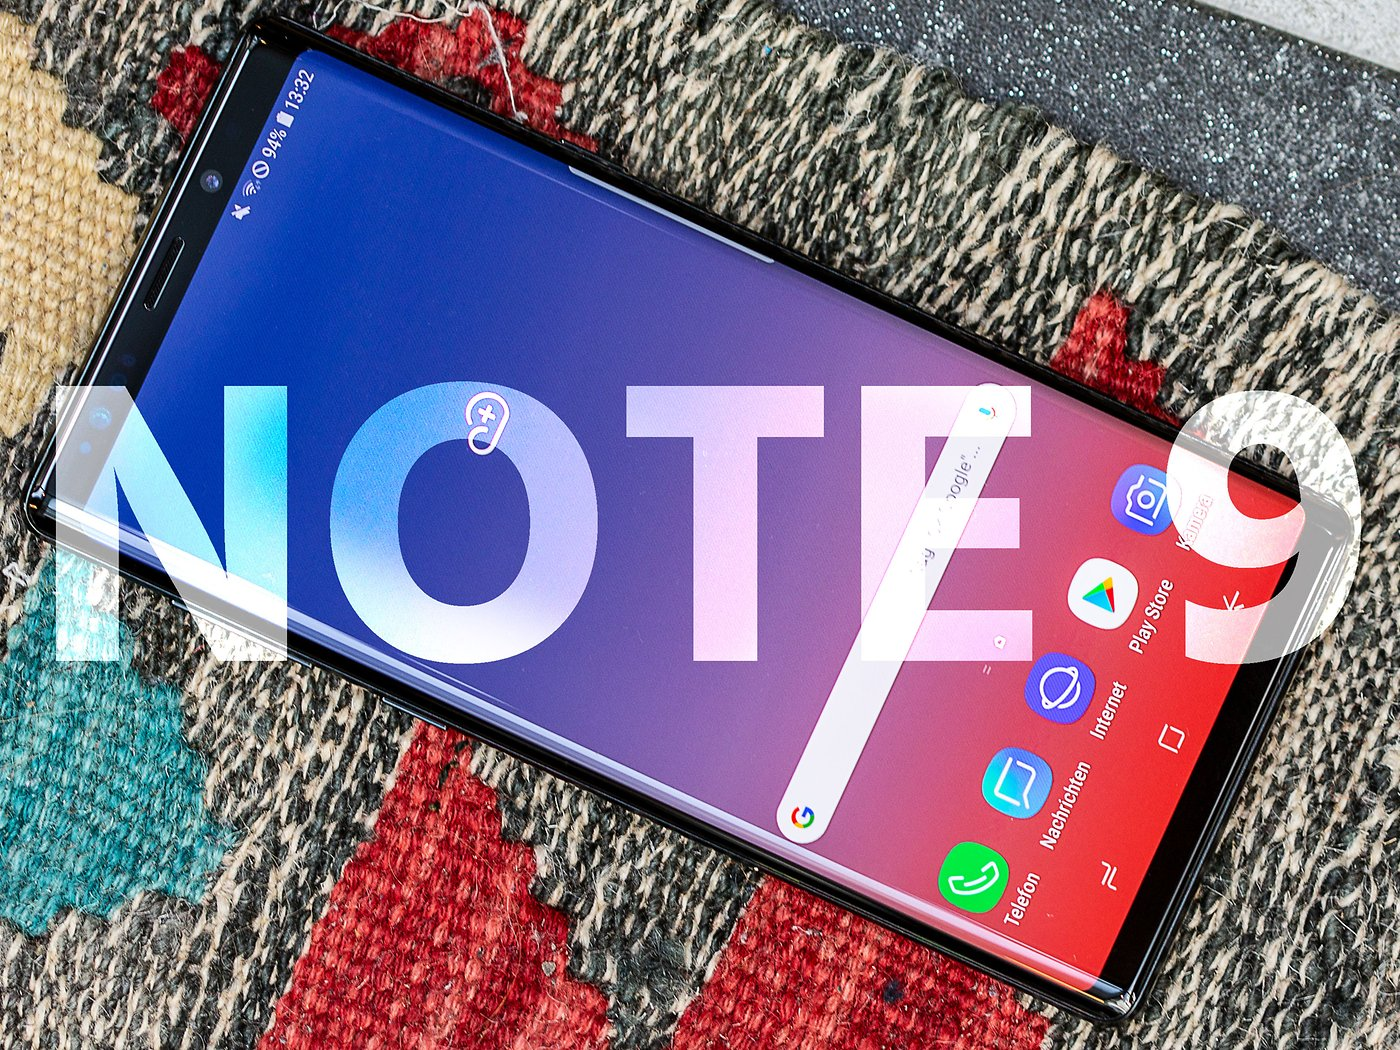 Samsung Galaxy Note 9: Android update brings all but night